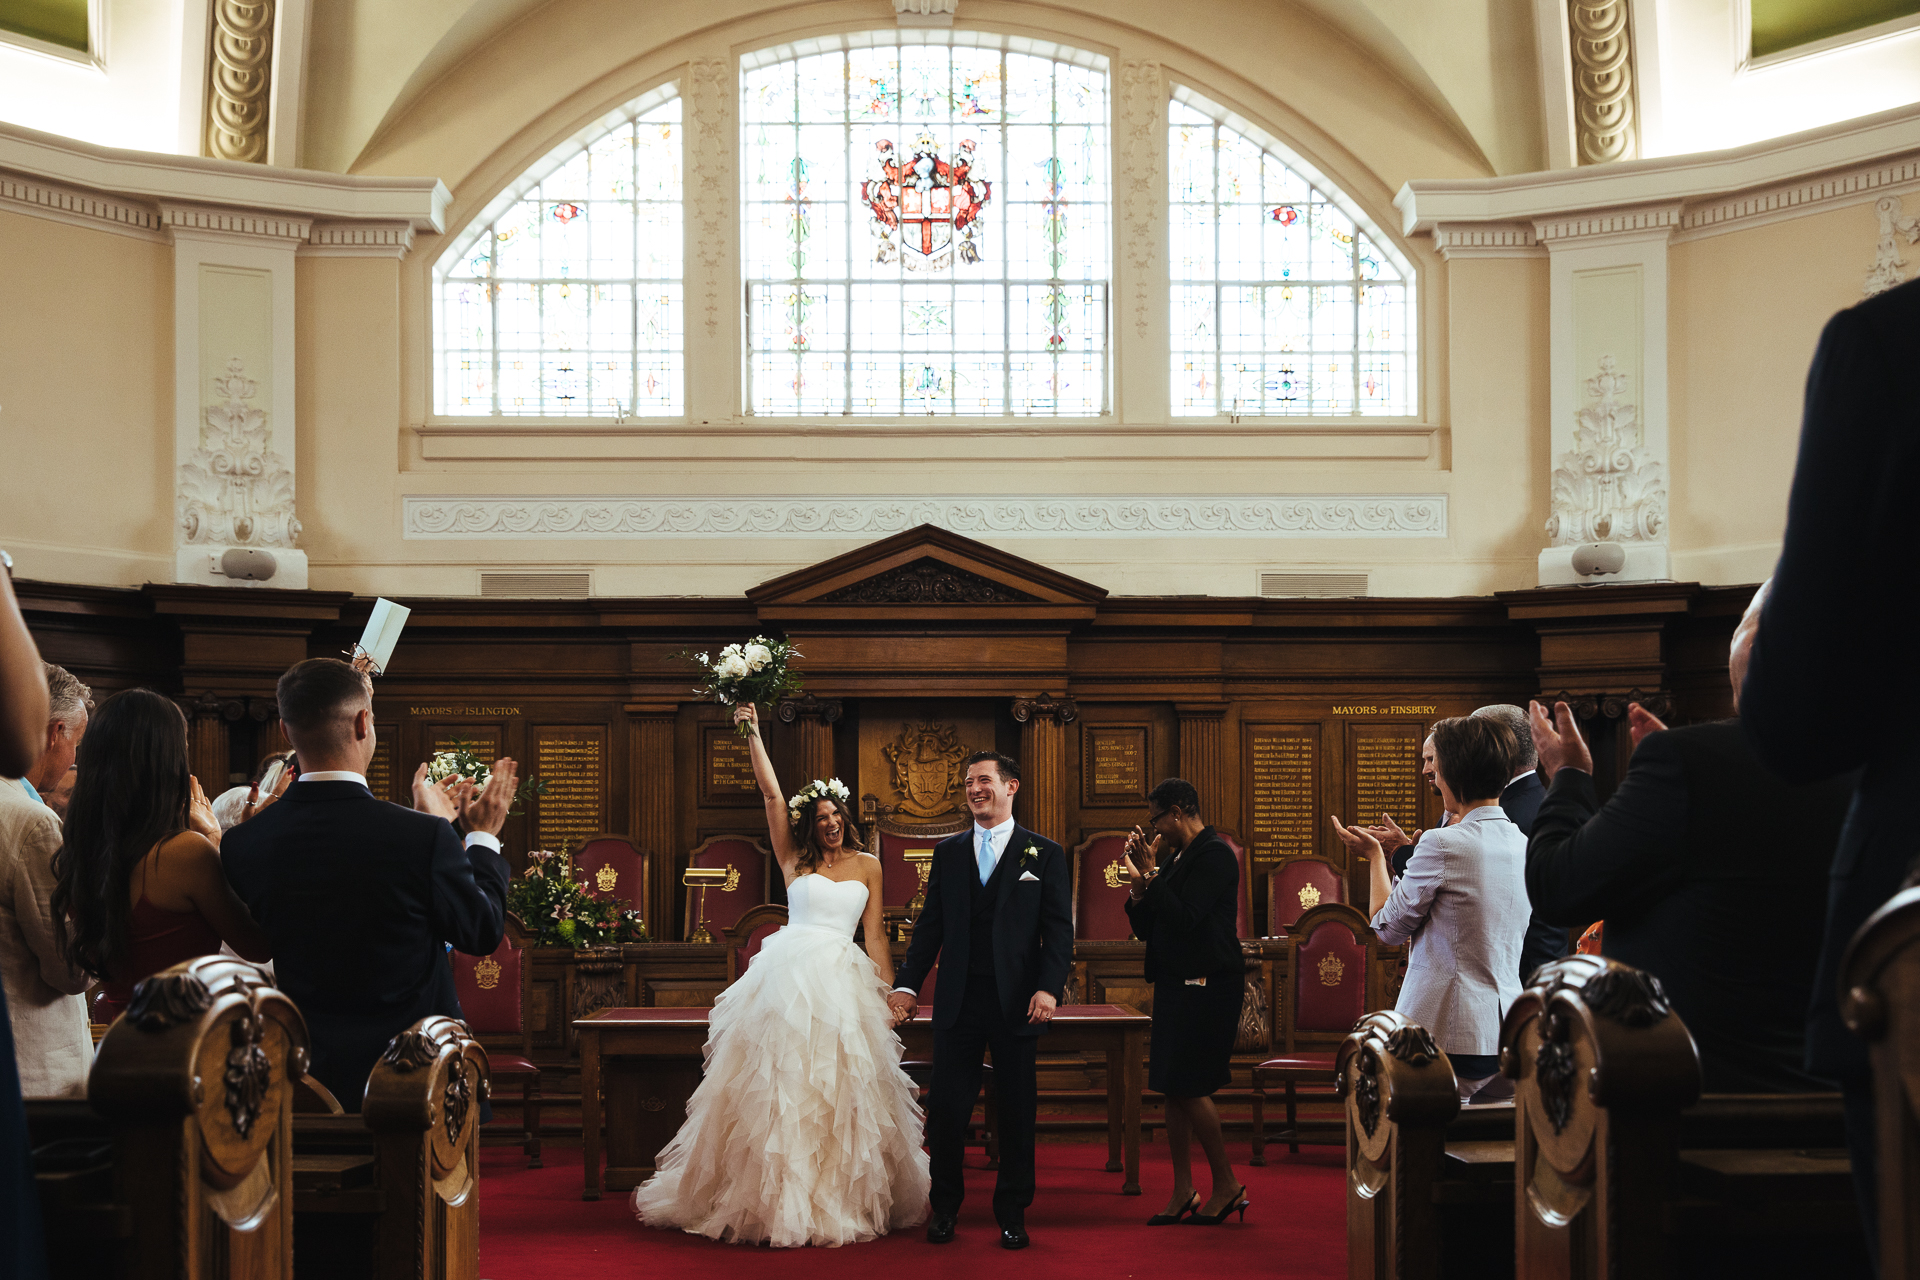 Lyndsey Goddard, of London, is a wedding photographer for Islington Town Hall